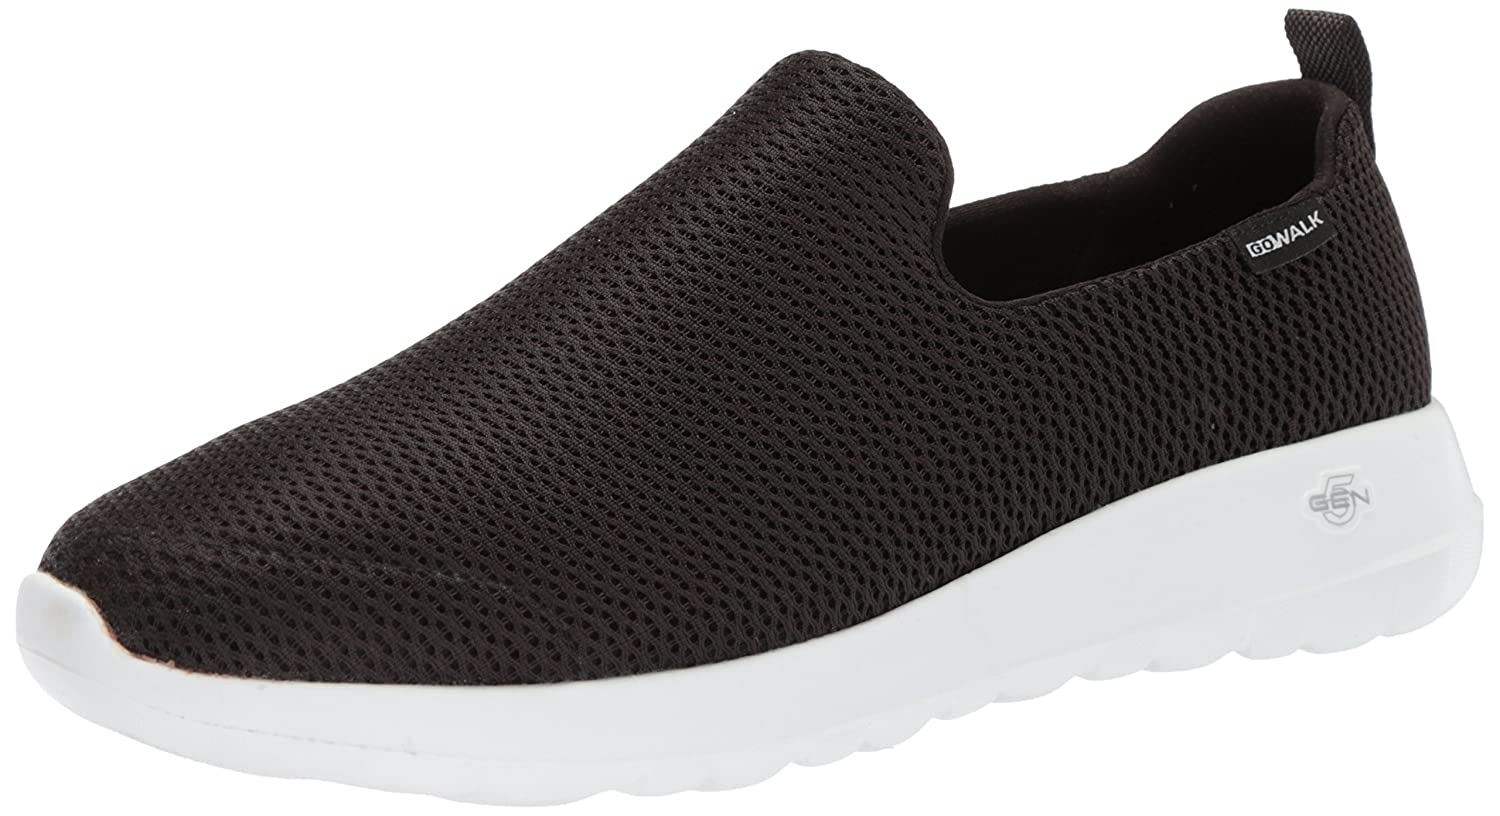 Skechers Herren Slipper Go Walk Max Schwarz Weiß  | New Products